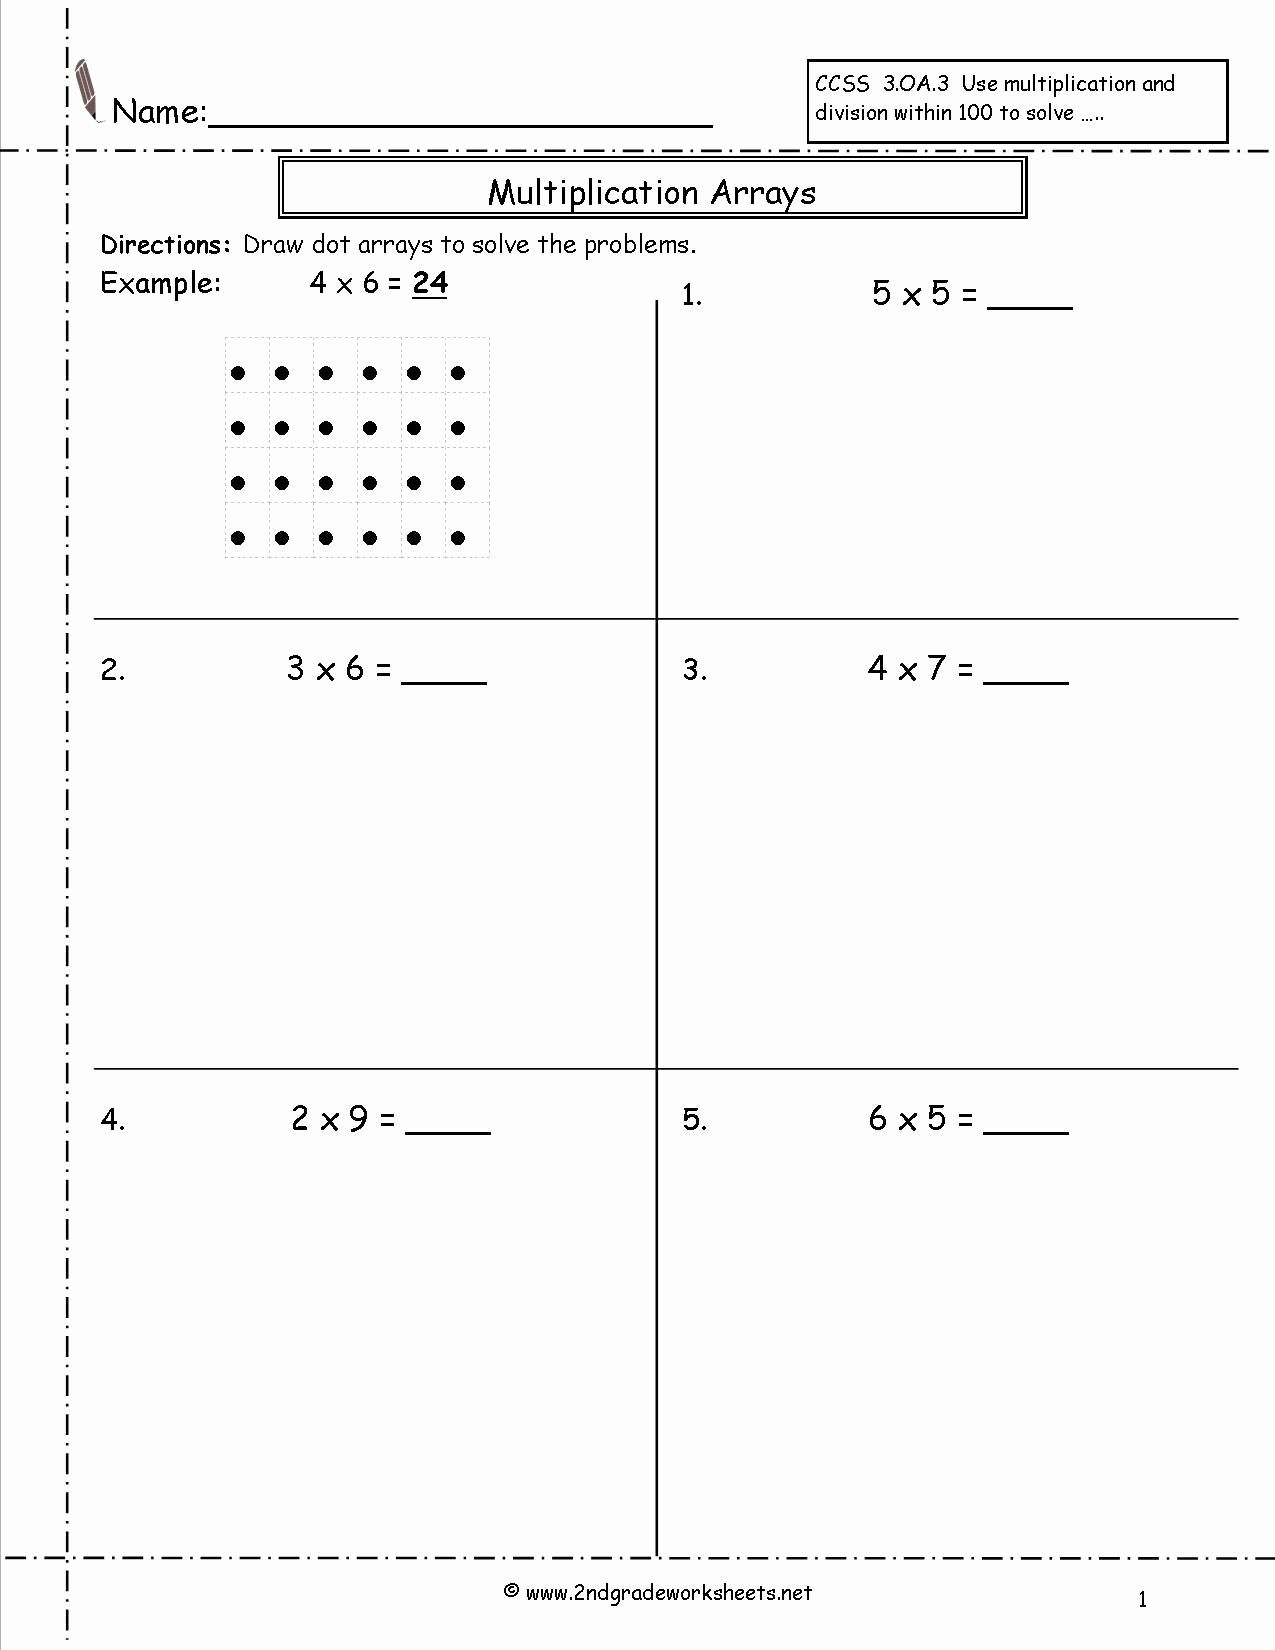 Array Worksheet 2nd Grade Lovely Array Worksheets To Print Array Worksheets 2nd Grade Free In 2020 Array Worksheets Multiplication Arrays Math Worksheets